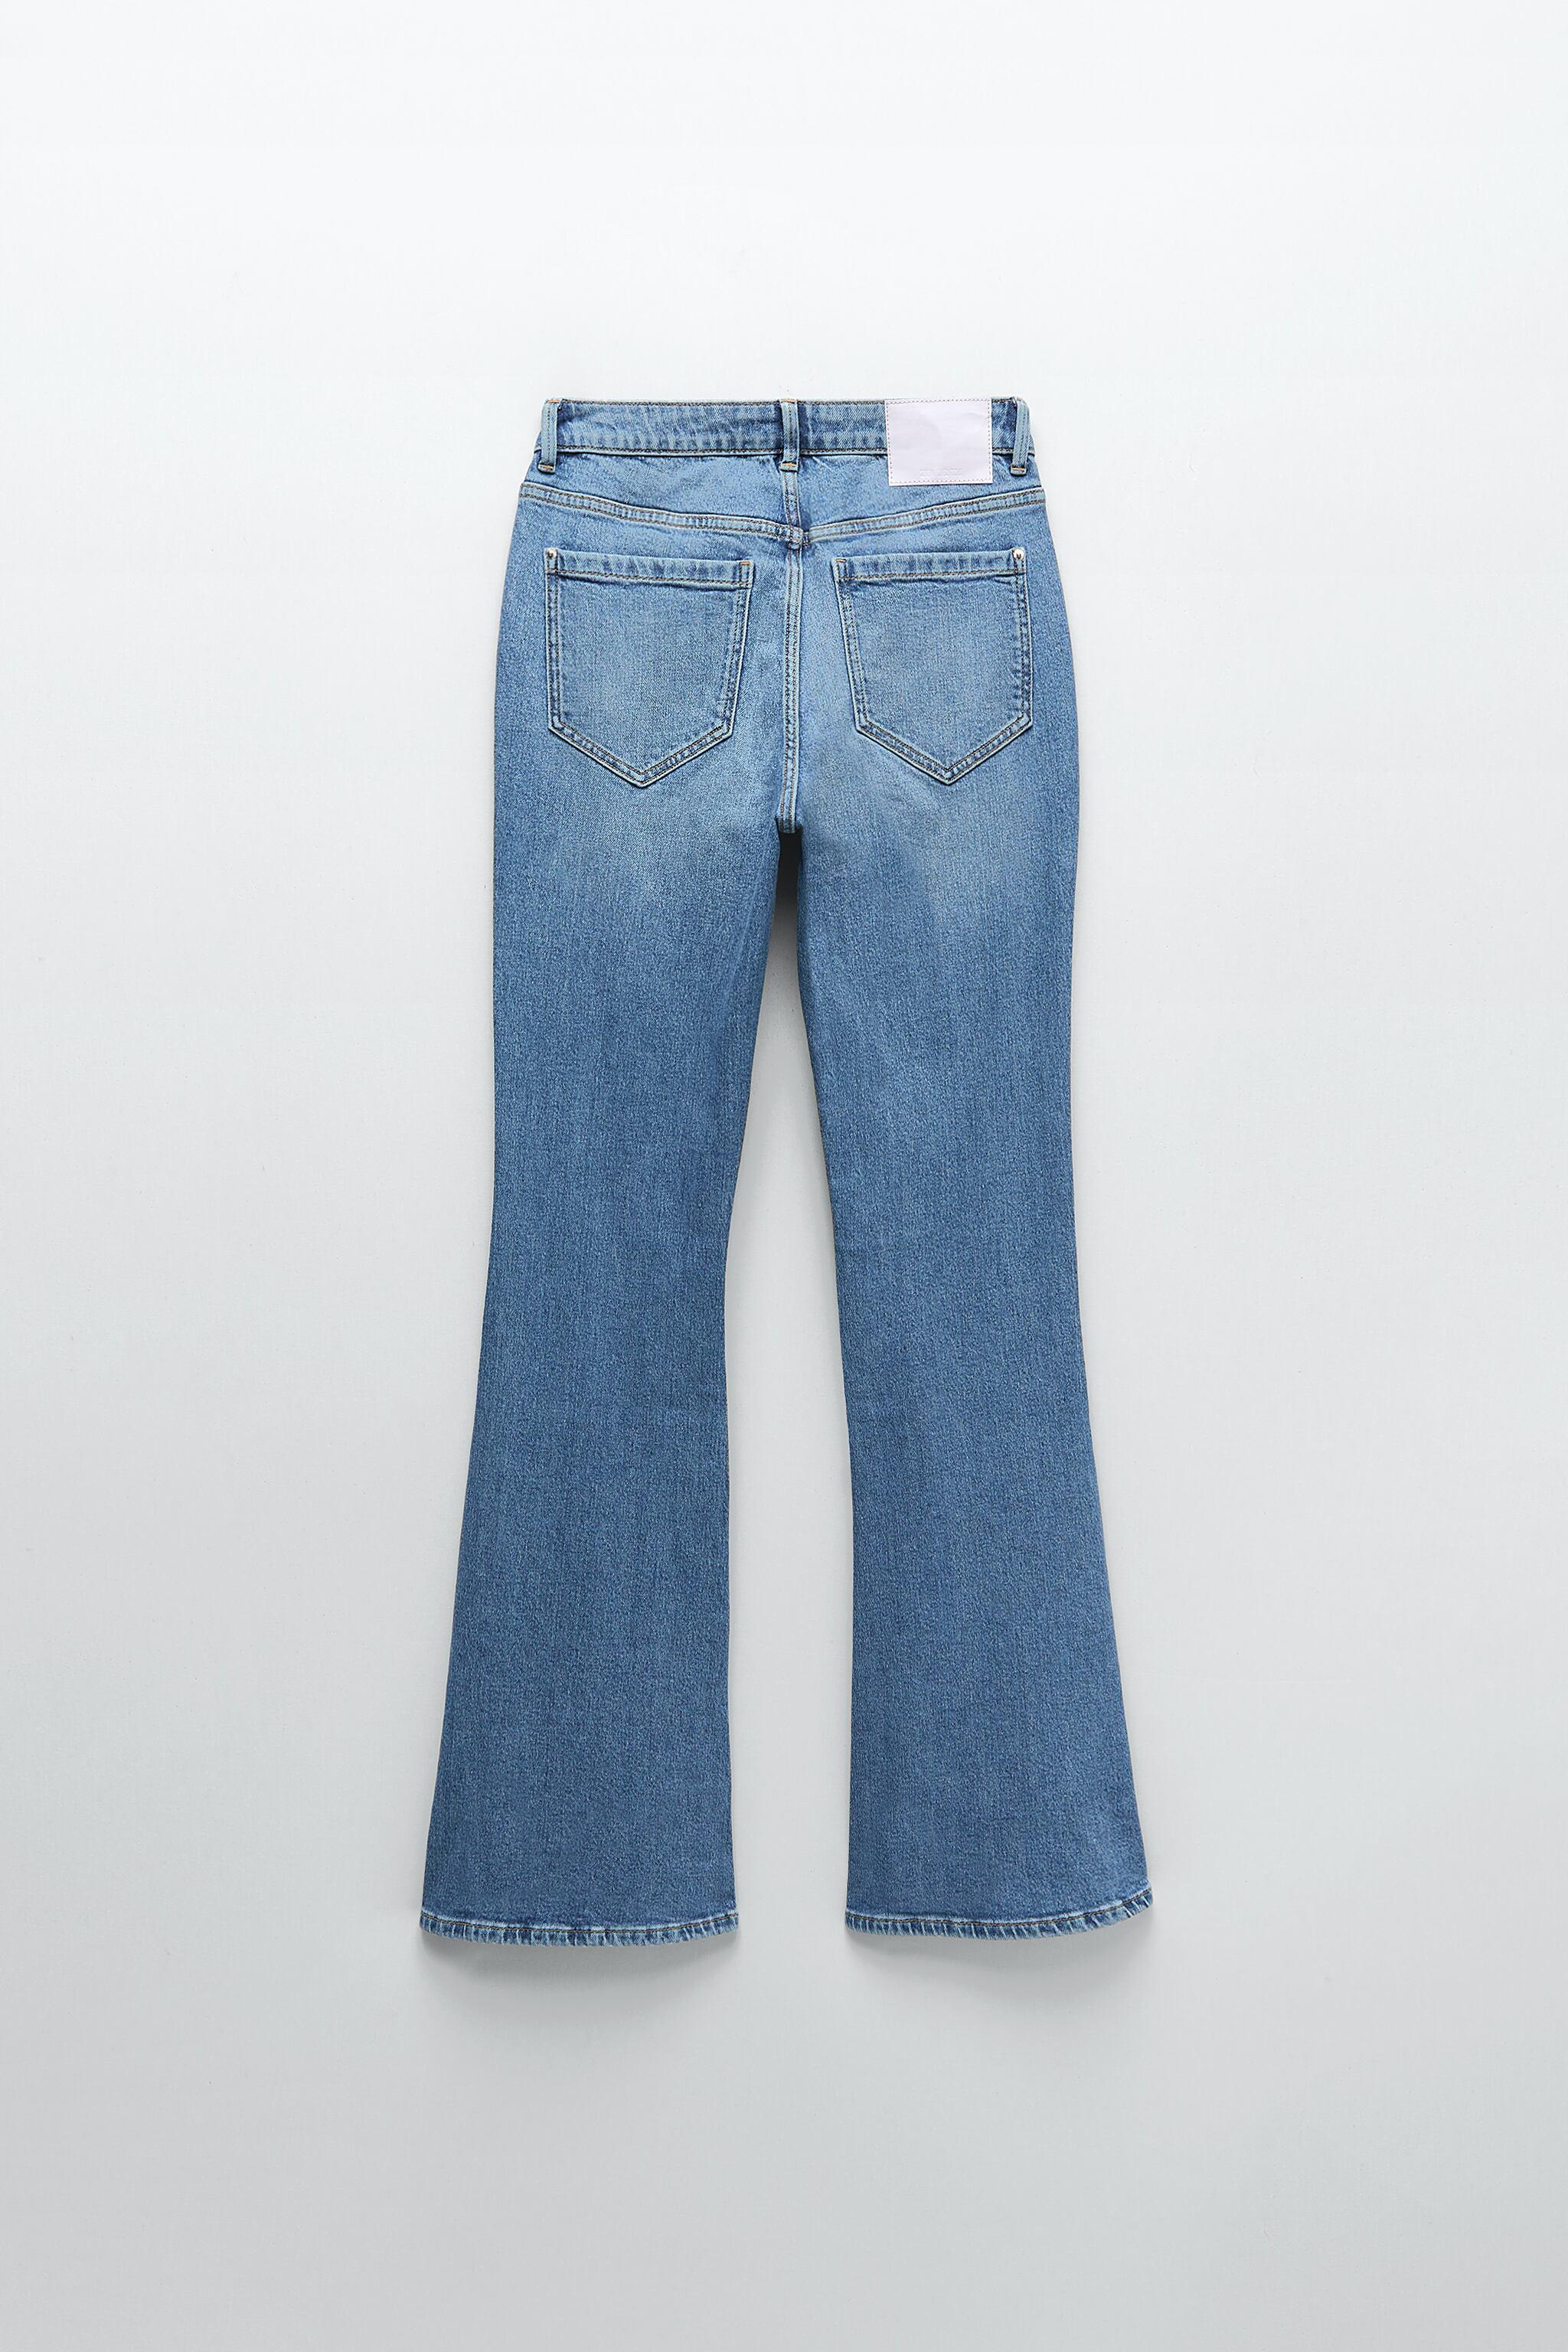 Z1975 HIGH RISE BUTTON FLY FLARED JEANS 4